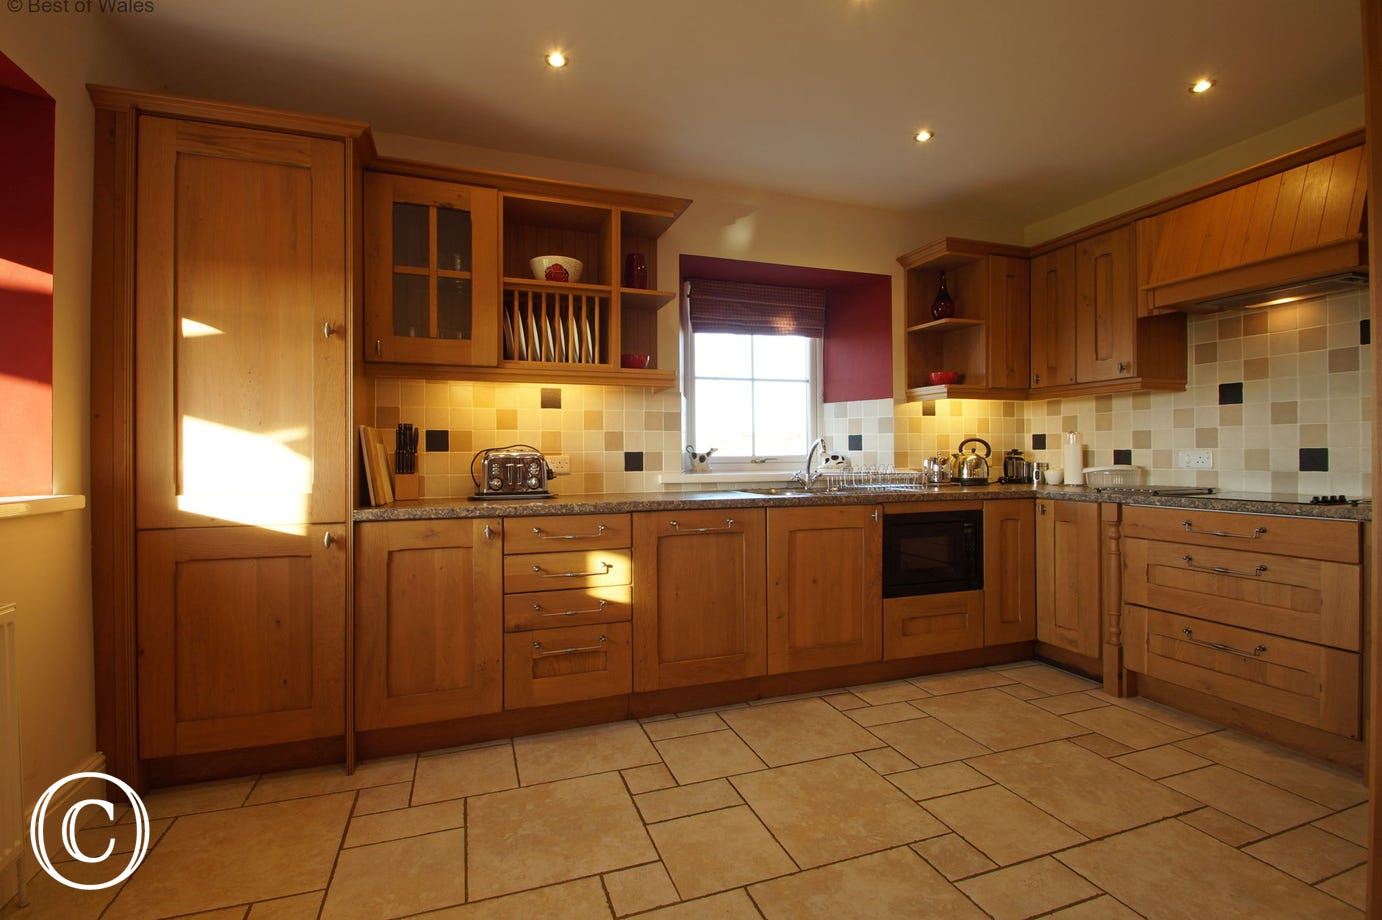 Fully equipped kitchen includes a dishwasher, fridge-freezer & double oven